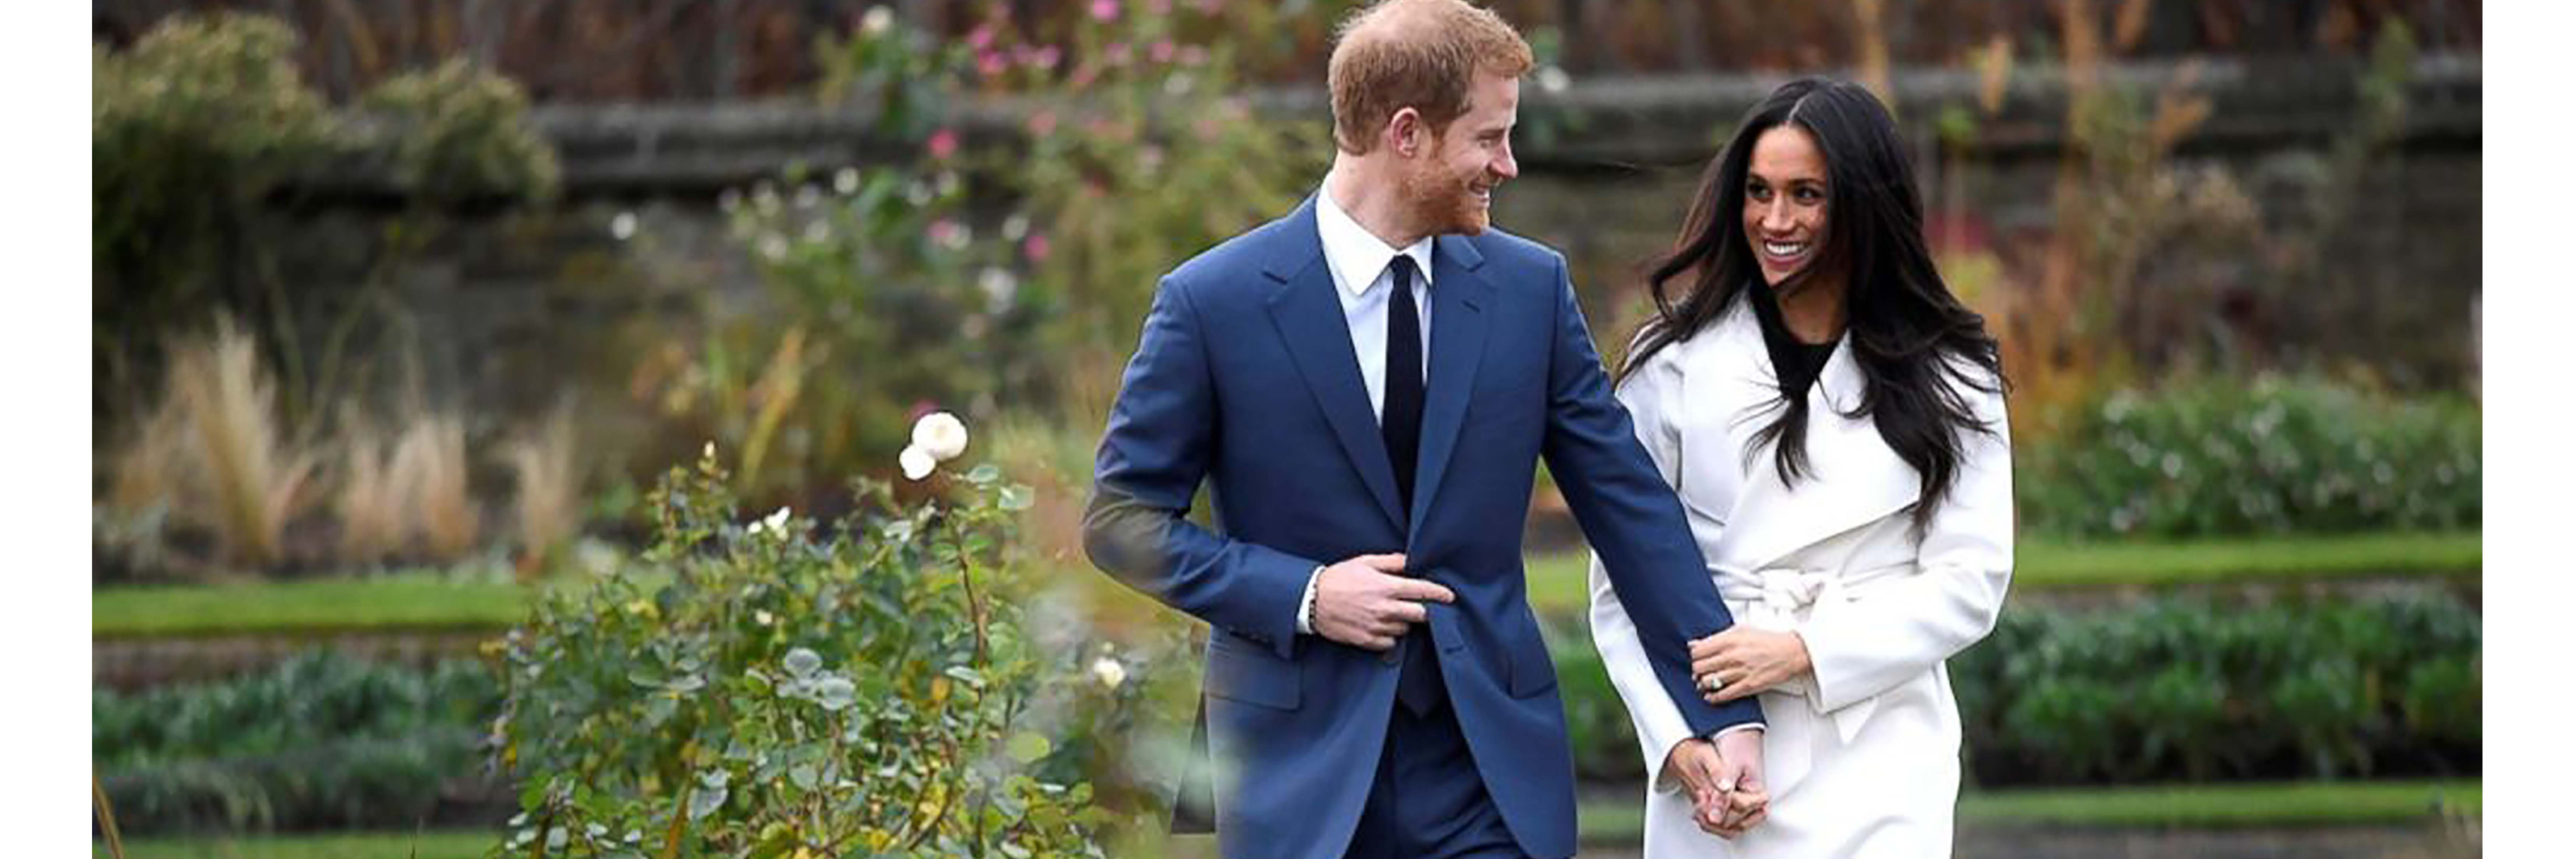 A Royal Price tag for a Royal Wedding: How does the Meghan/Harry wedding compare to the average commoners special day?